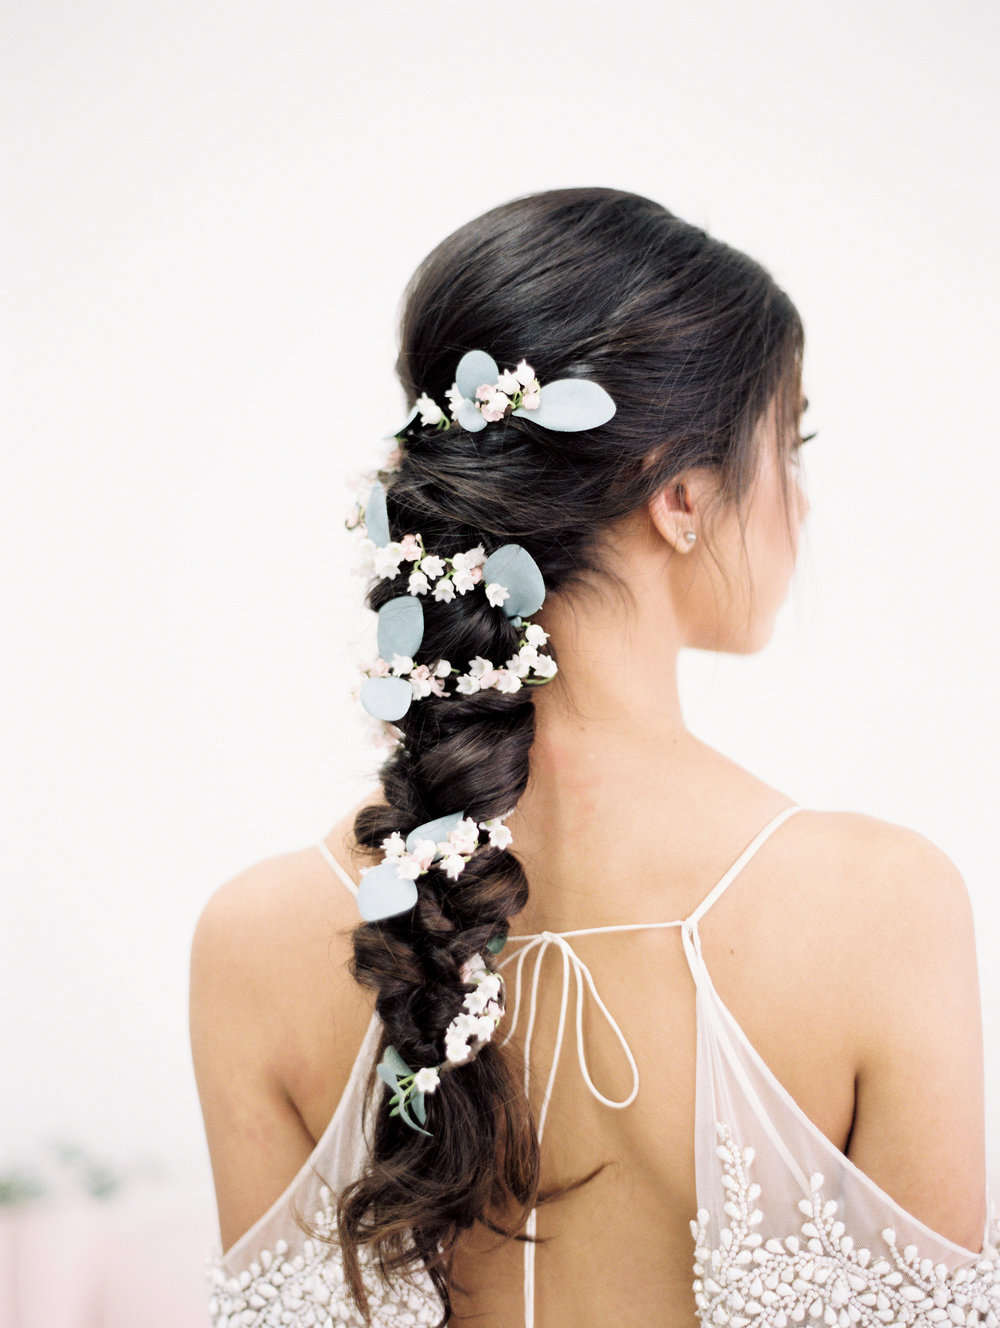 flower-garland-braided-bridal-hairstyle-with-flowers